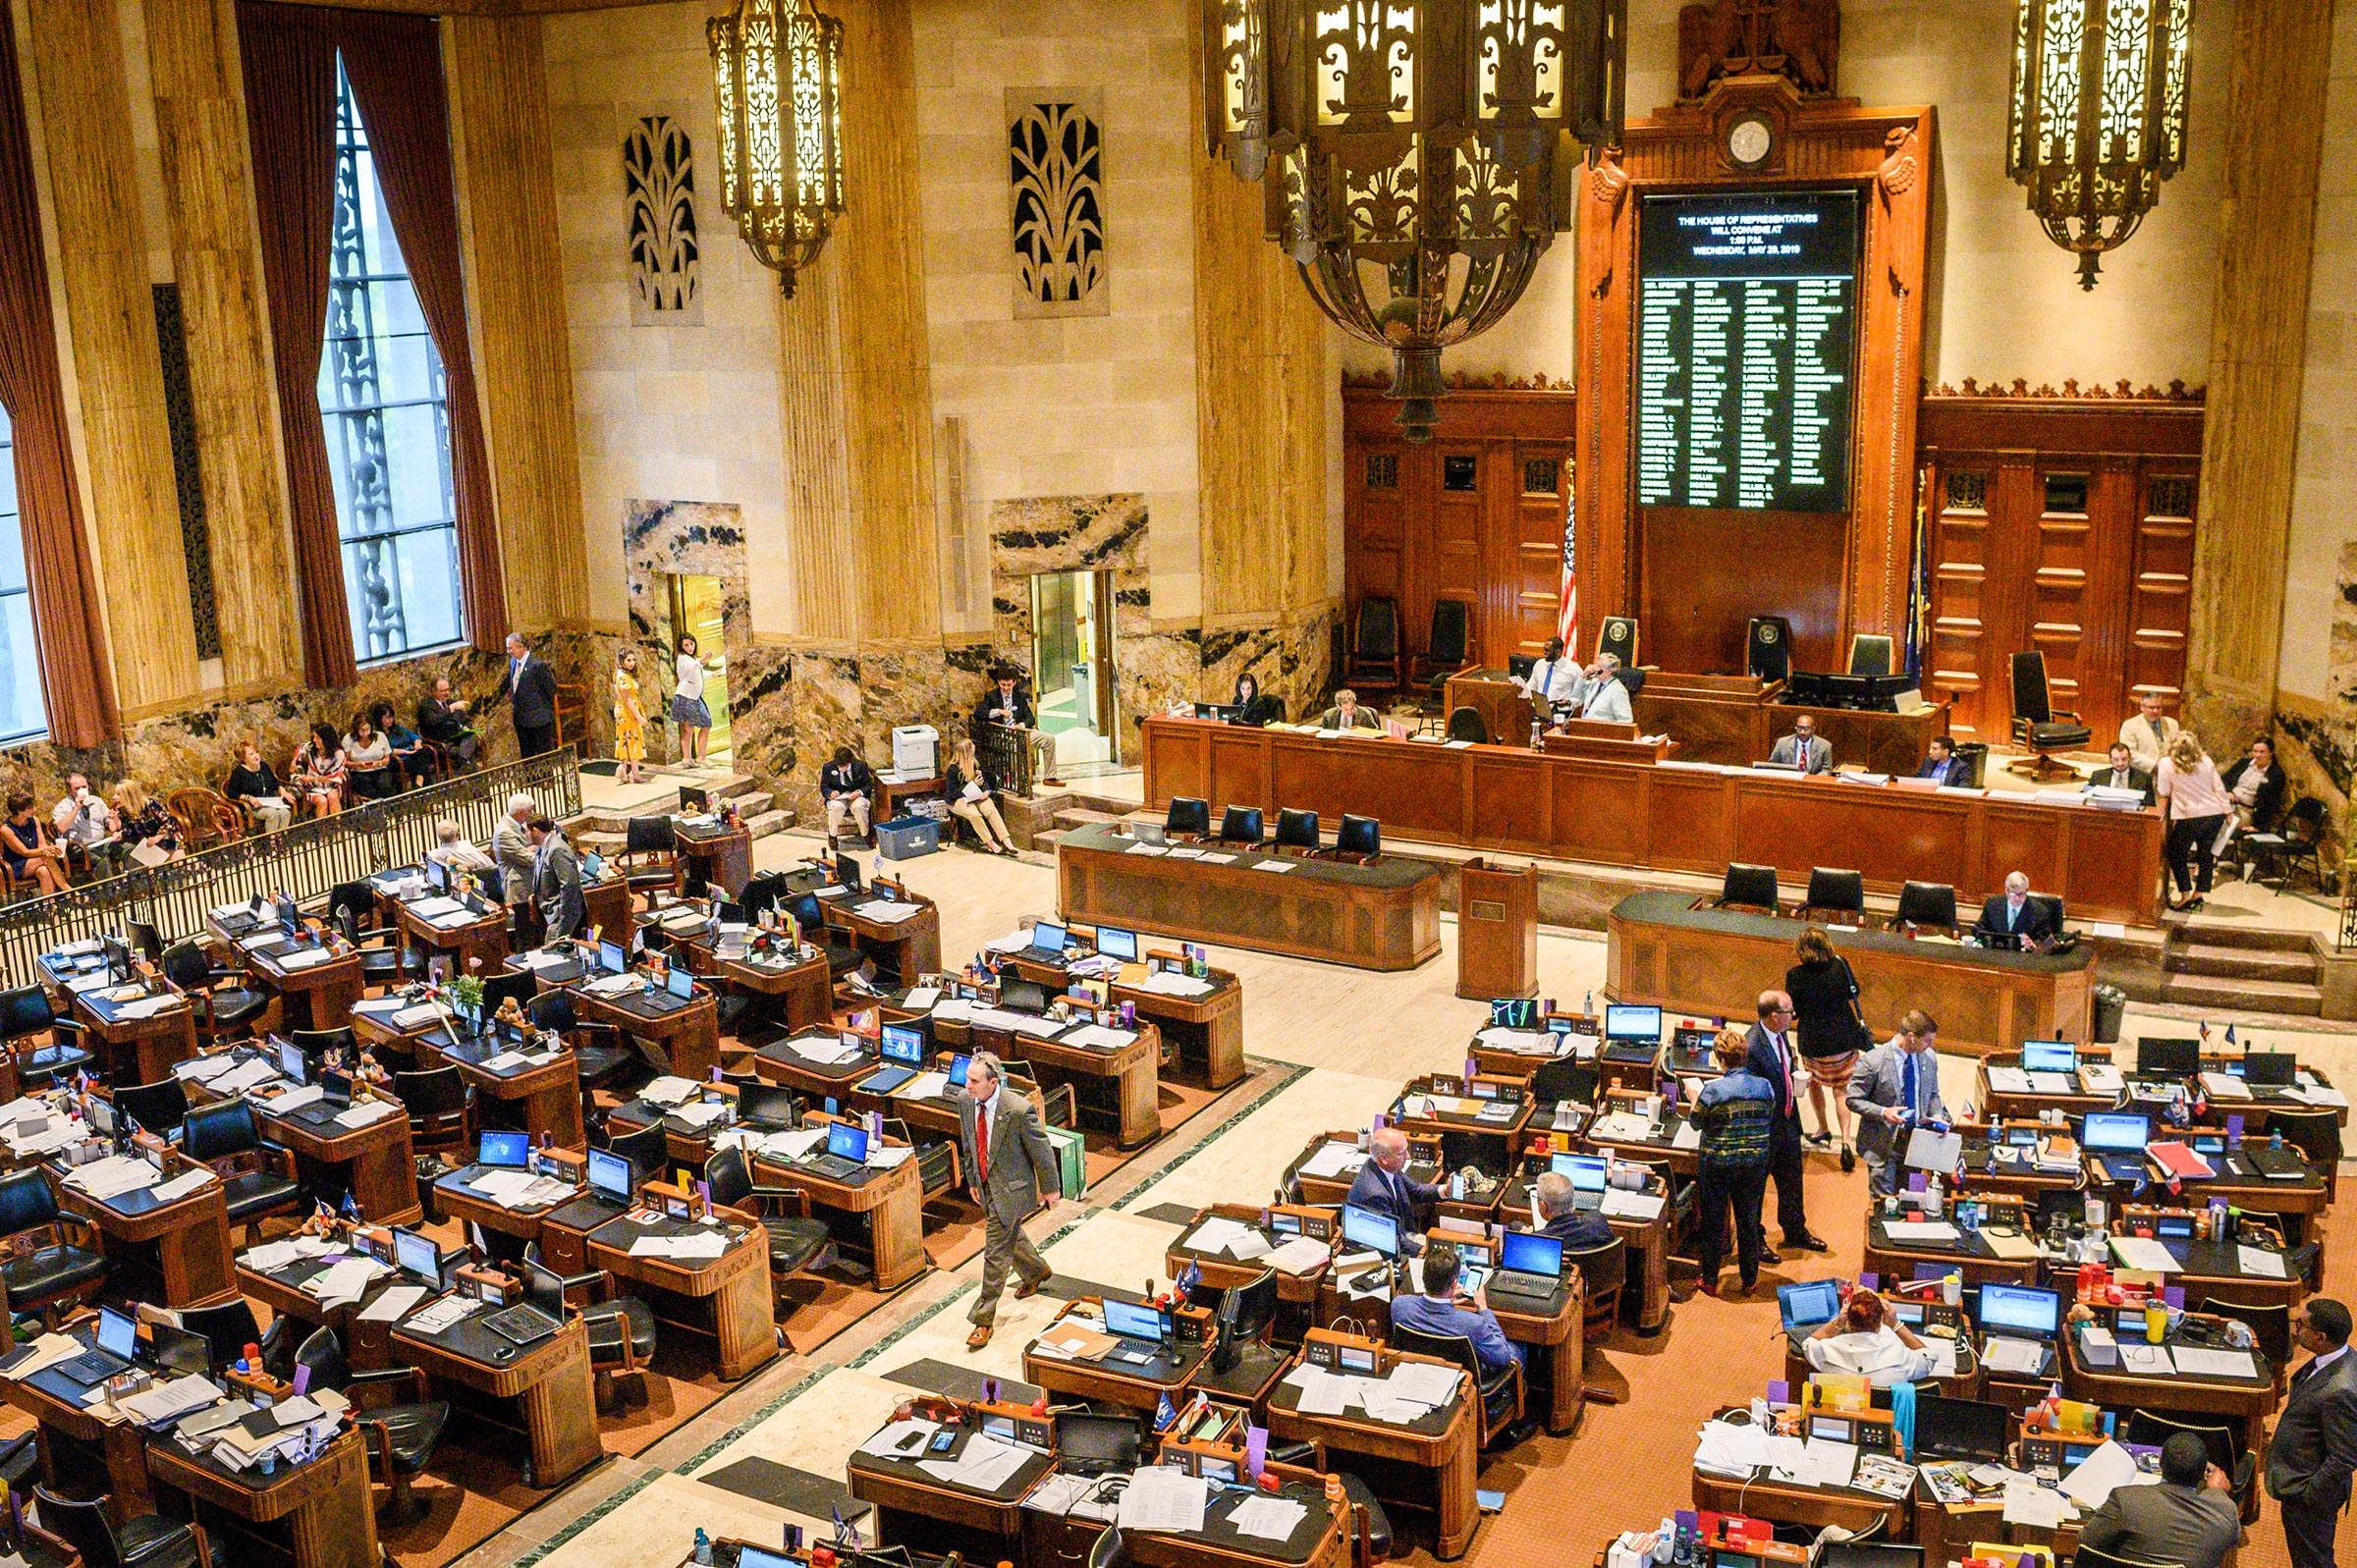 Inside the House of Representatives at the Louisiana State Capitol in Baton Rouge, May 29, 2019. Louisiana lawmakers voted to ban the procedure once the pulsing of what will become the fetus's heart could be detected.